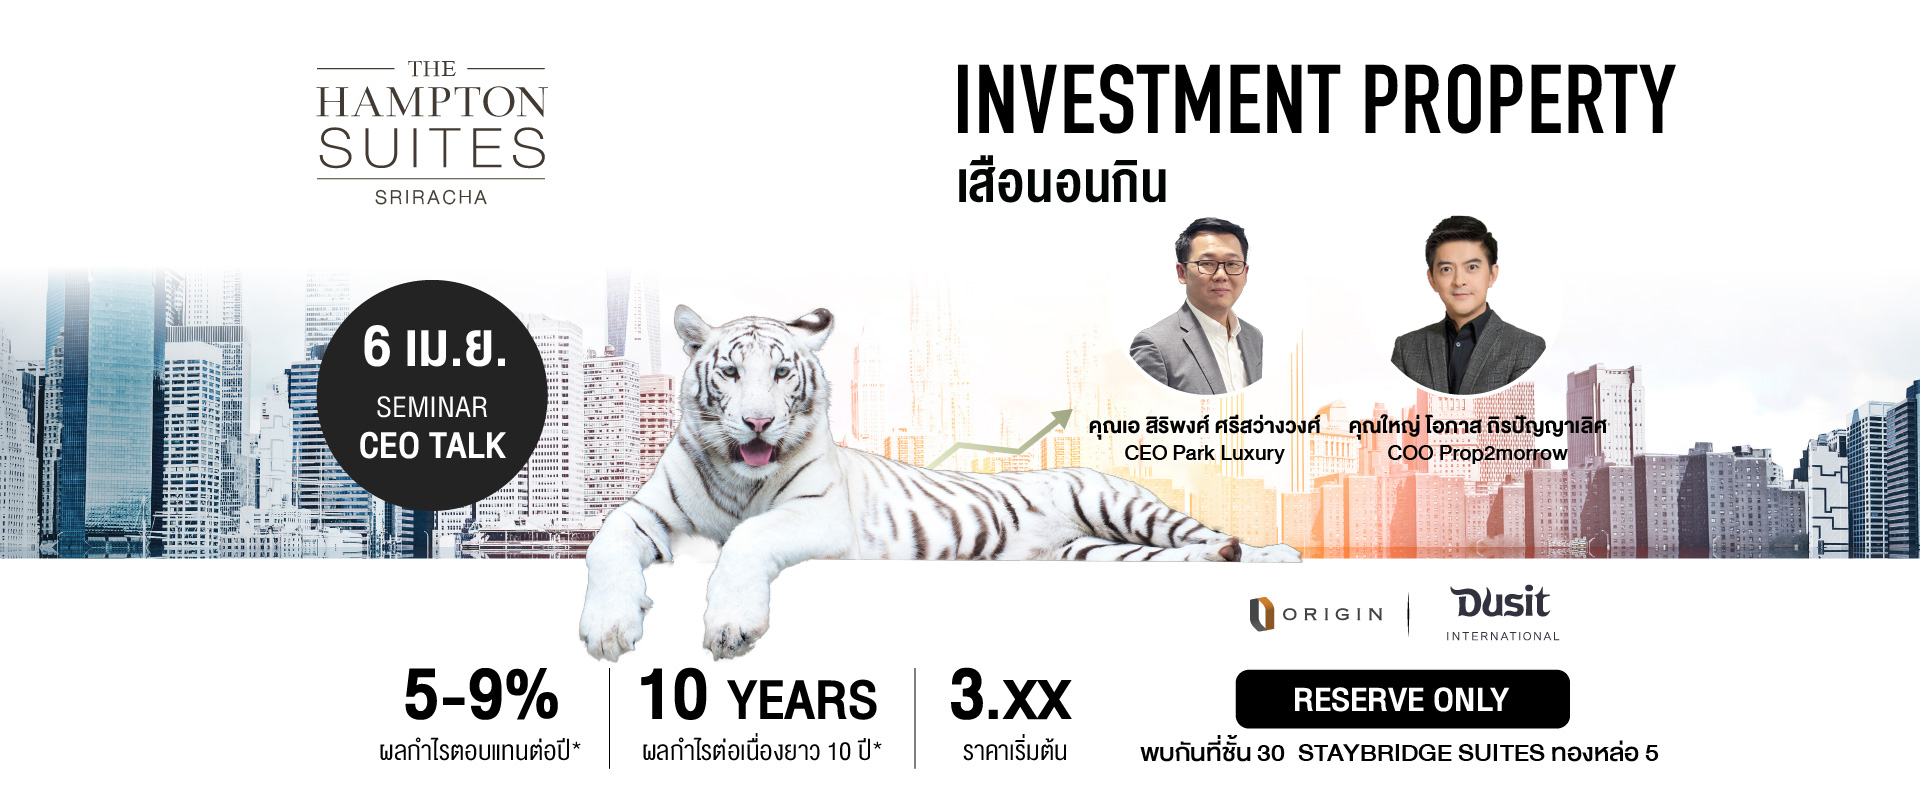 Invesment Property